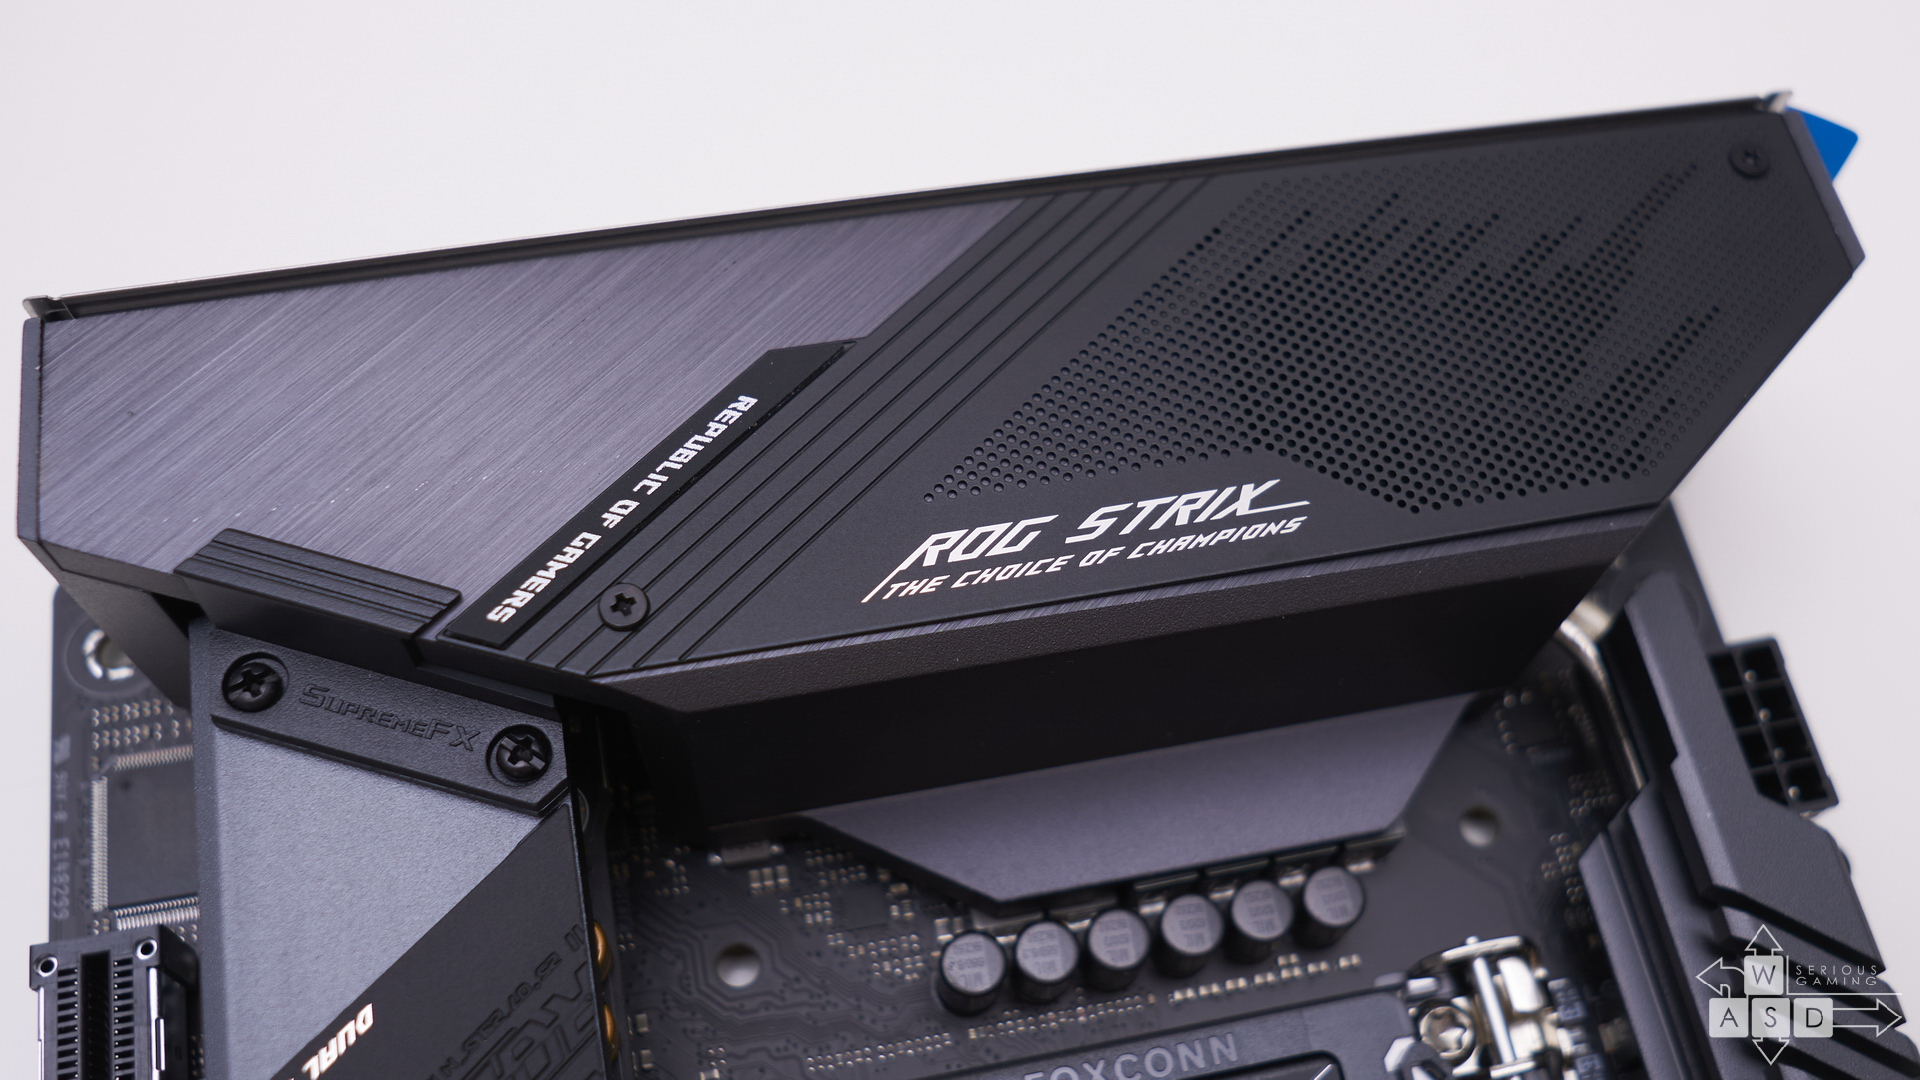 Asus ROG Strix Z490-i Gaming review | WASD